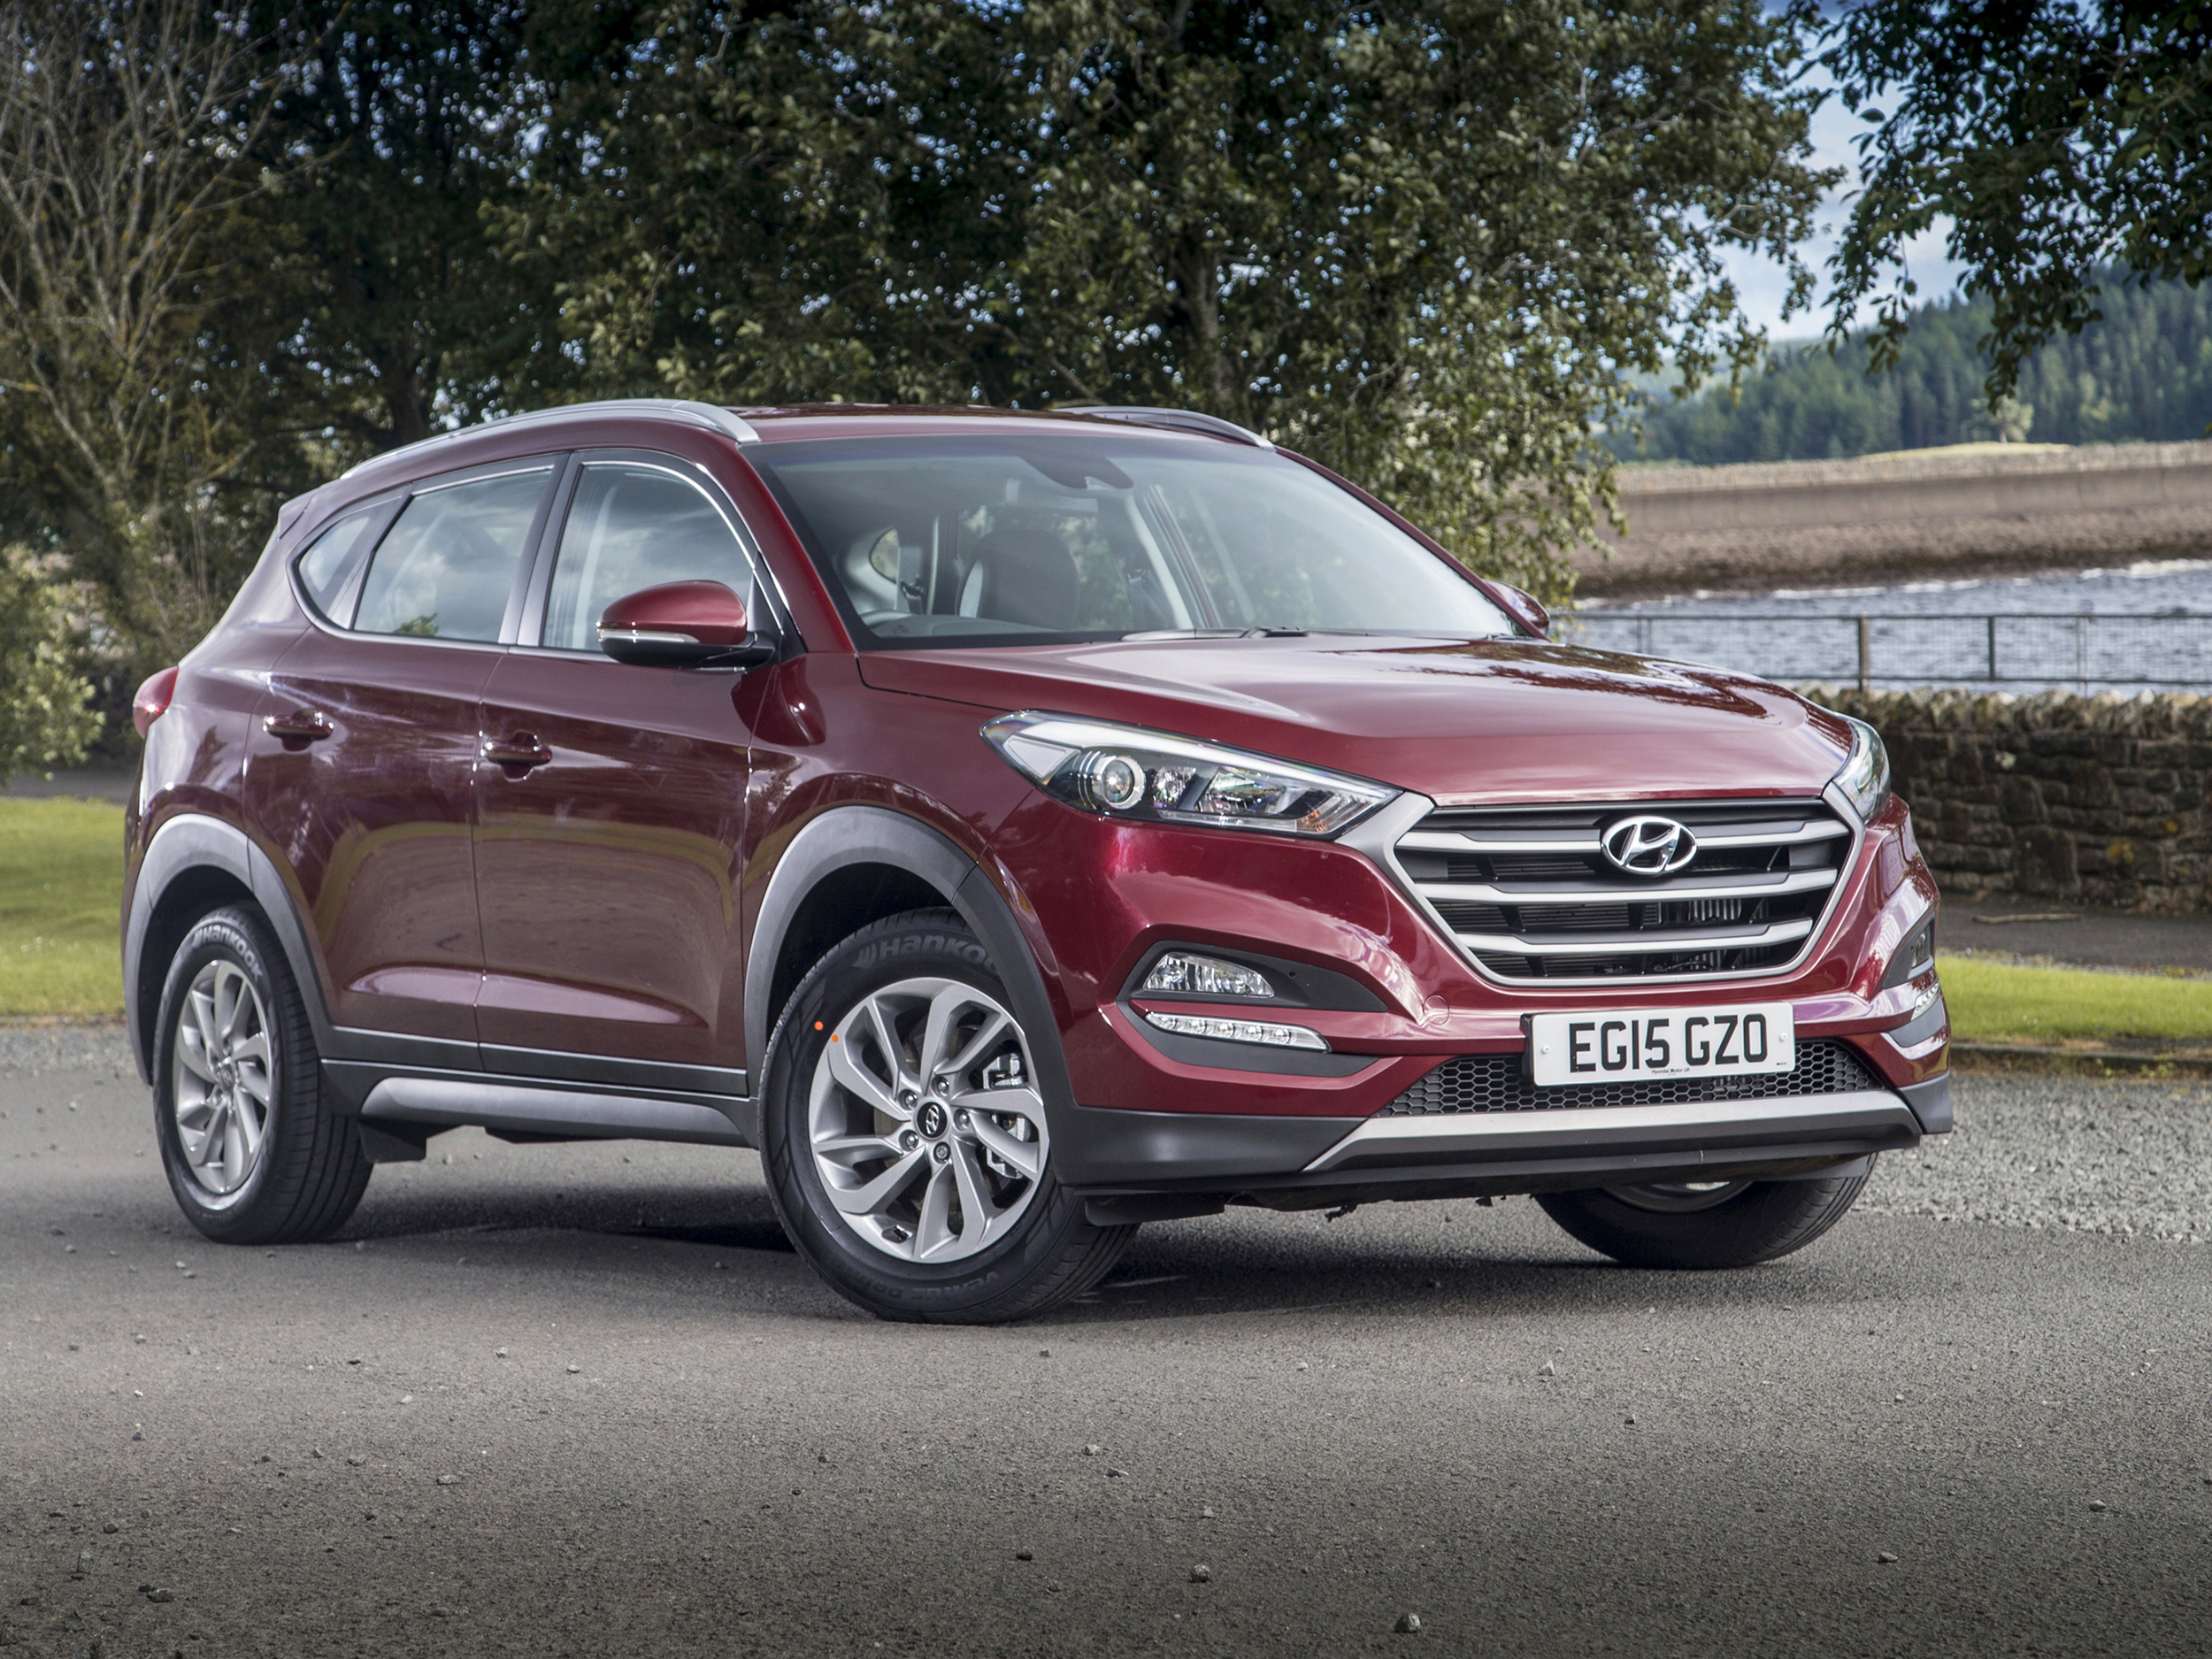 Hyundai Tucson scores 5-star safety rating